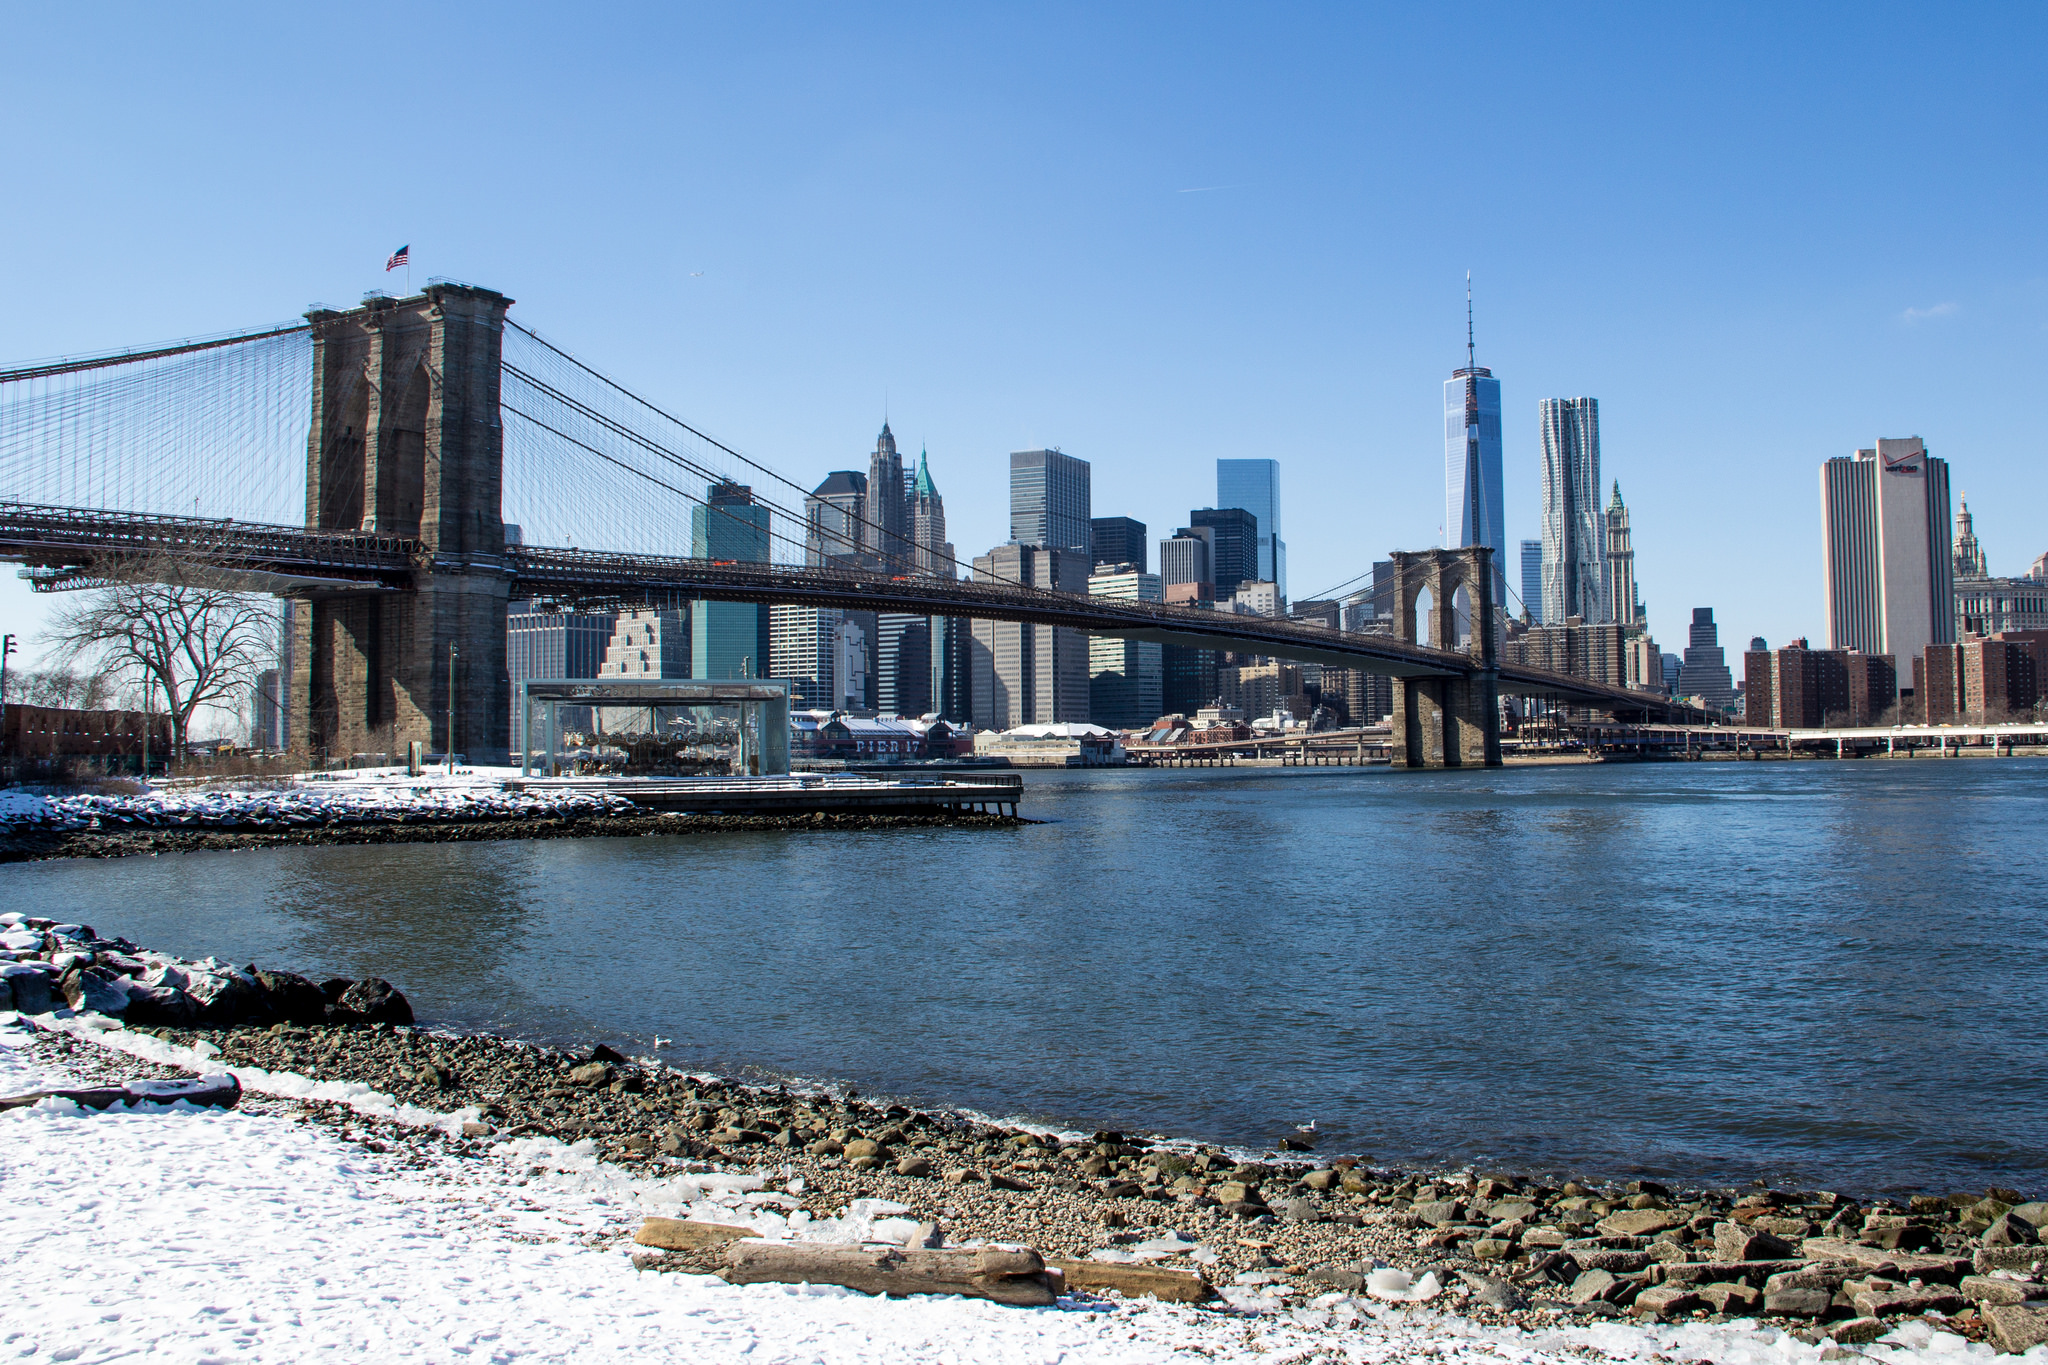 Wetter in new york im februar temperatur klima for What to do in new york new york